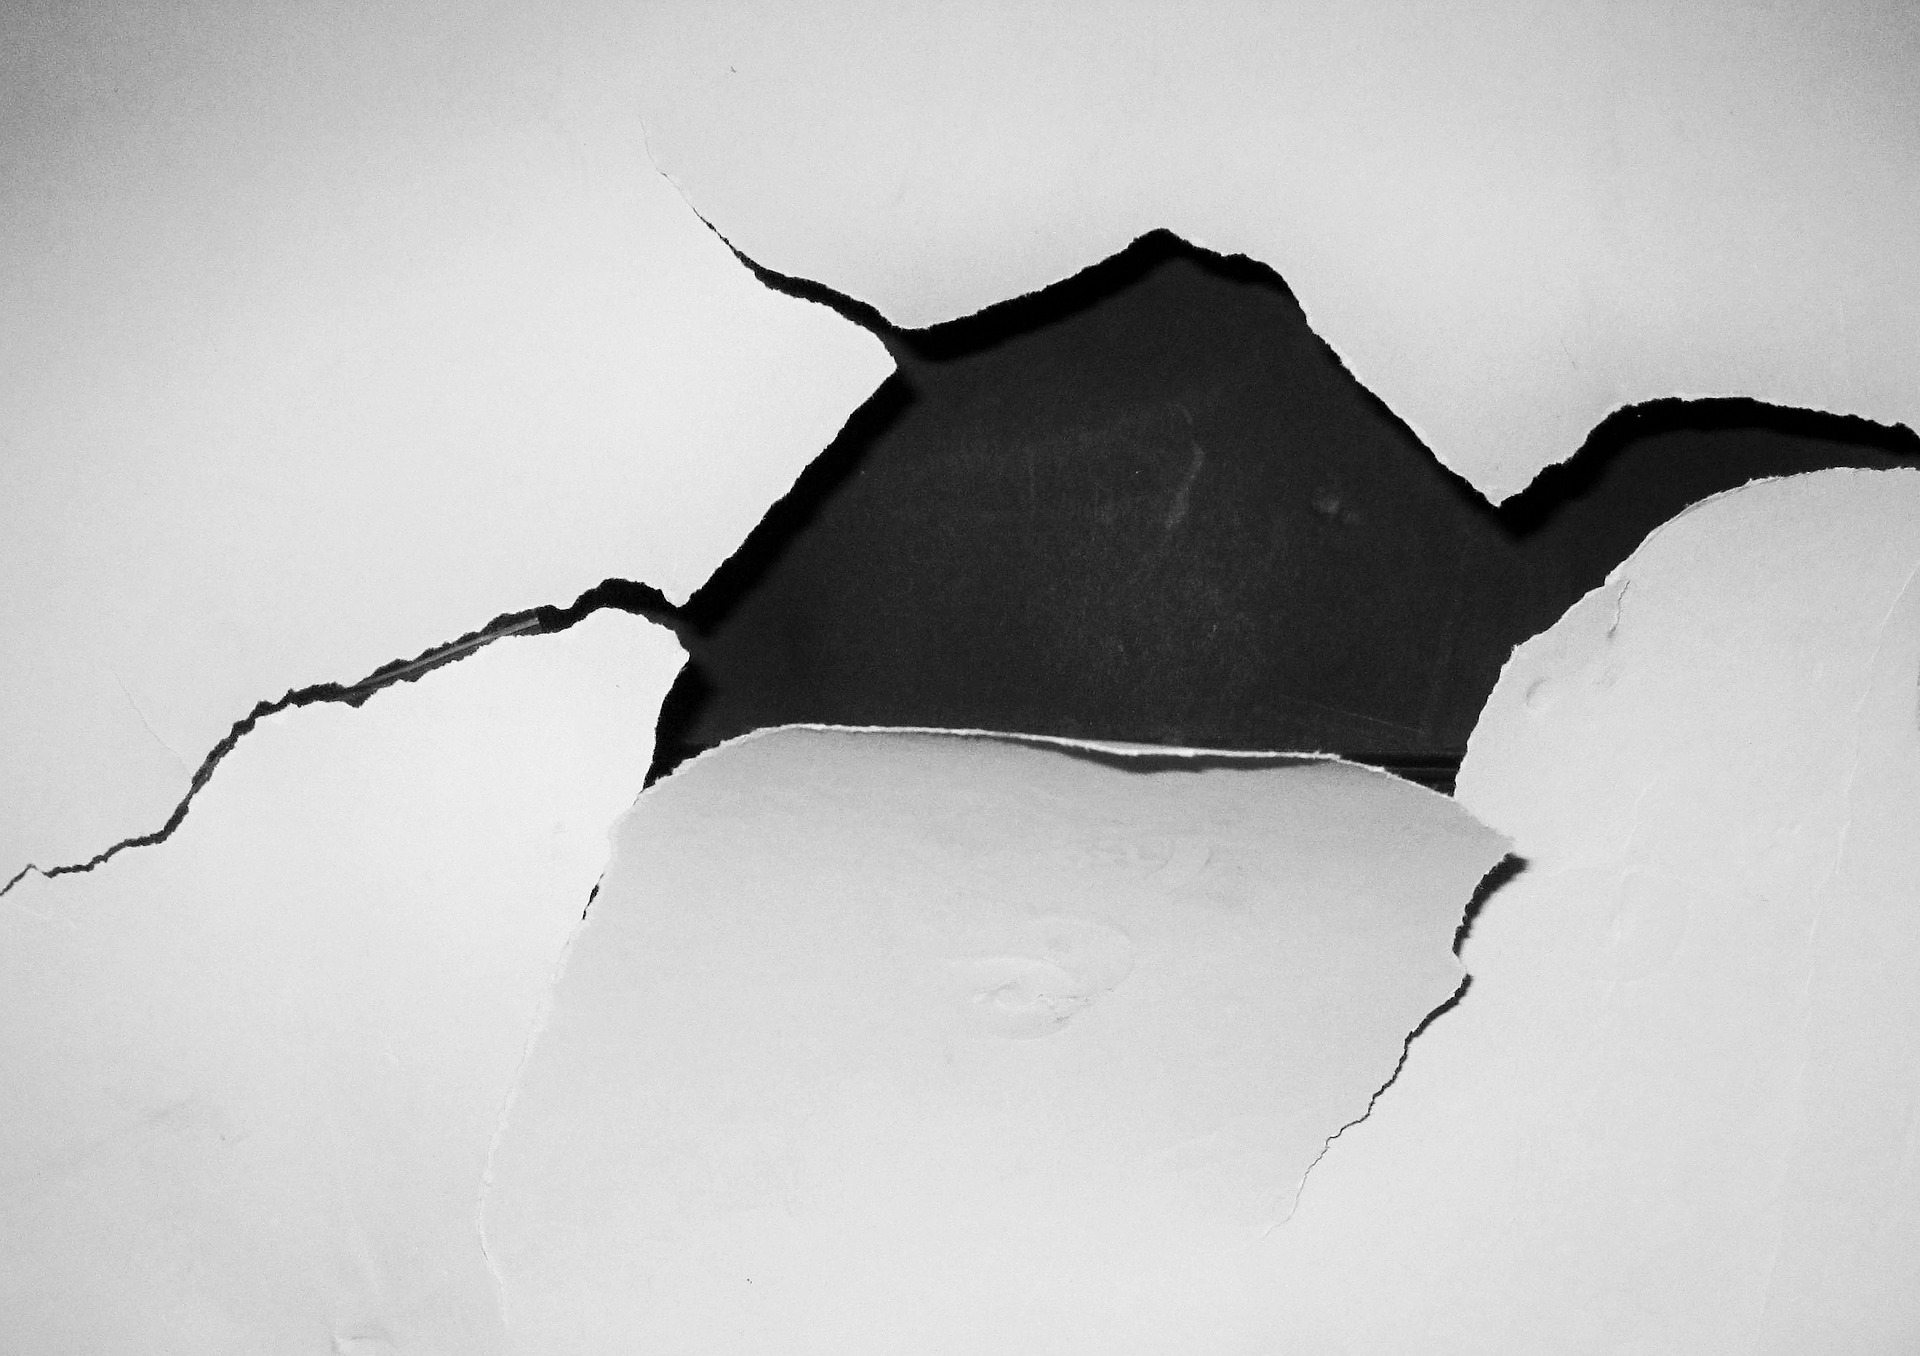 The Fastest Ways to Damage Your Indoor Walls & How to Avoid Them